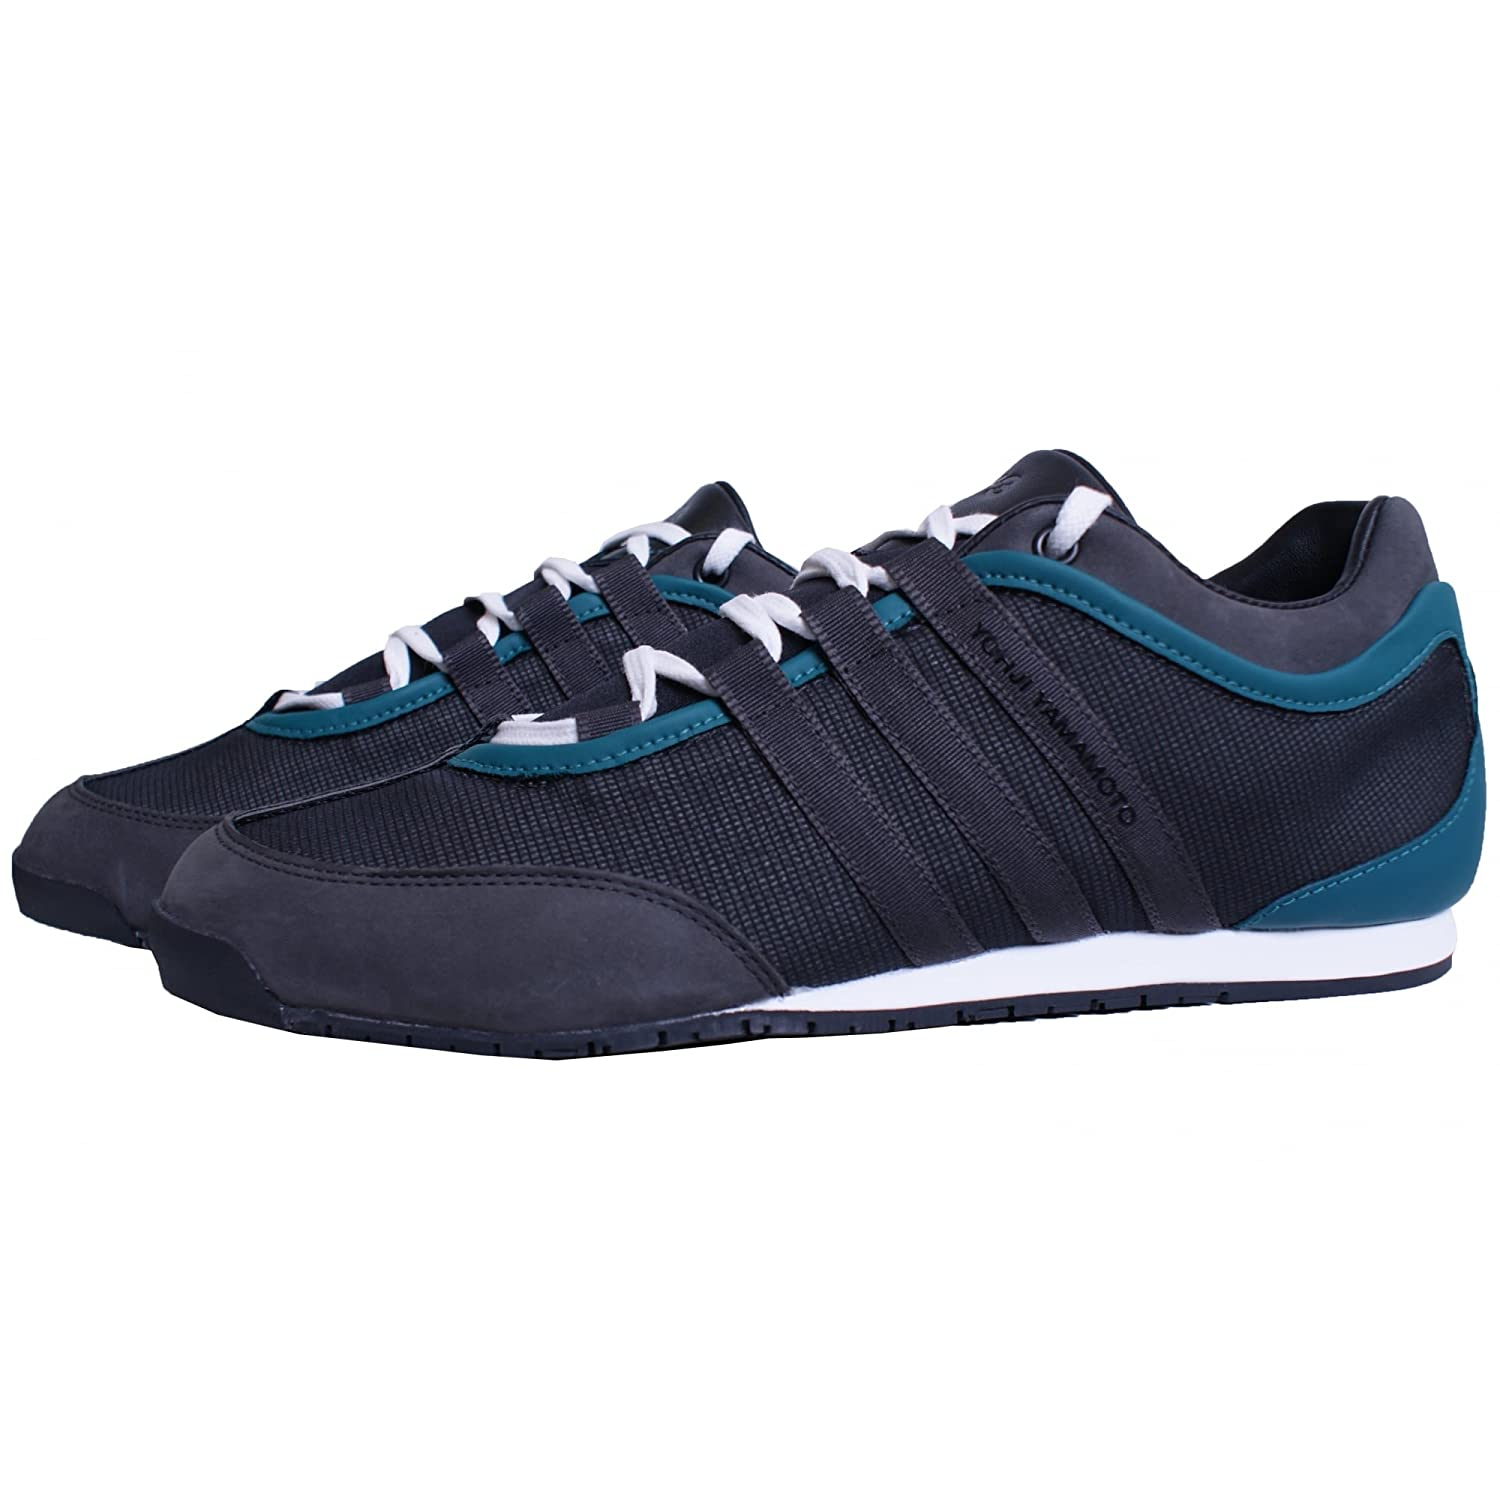 Buy Cheap Adidas Y3 Y3 Boxing Trainers Men Adidas Trainers